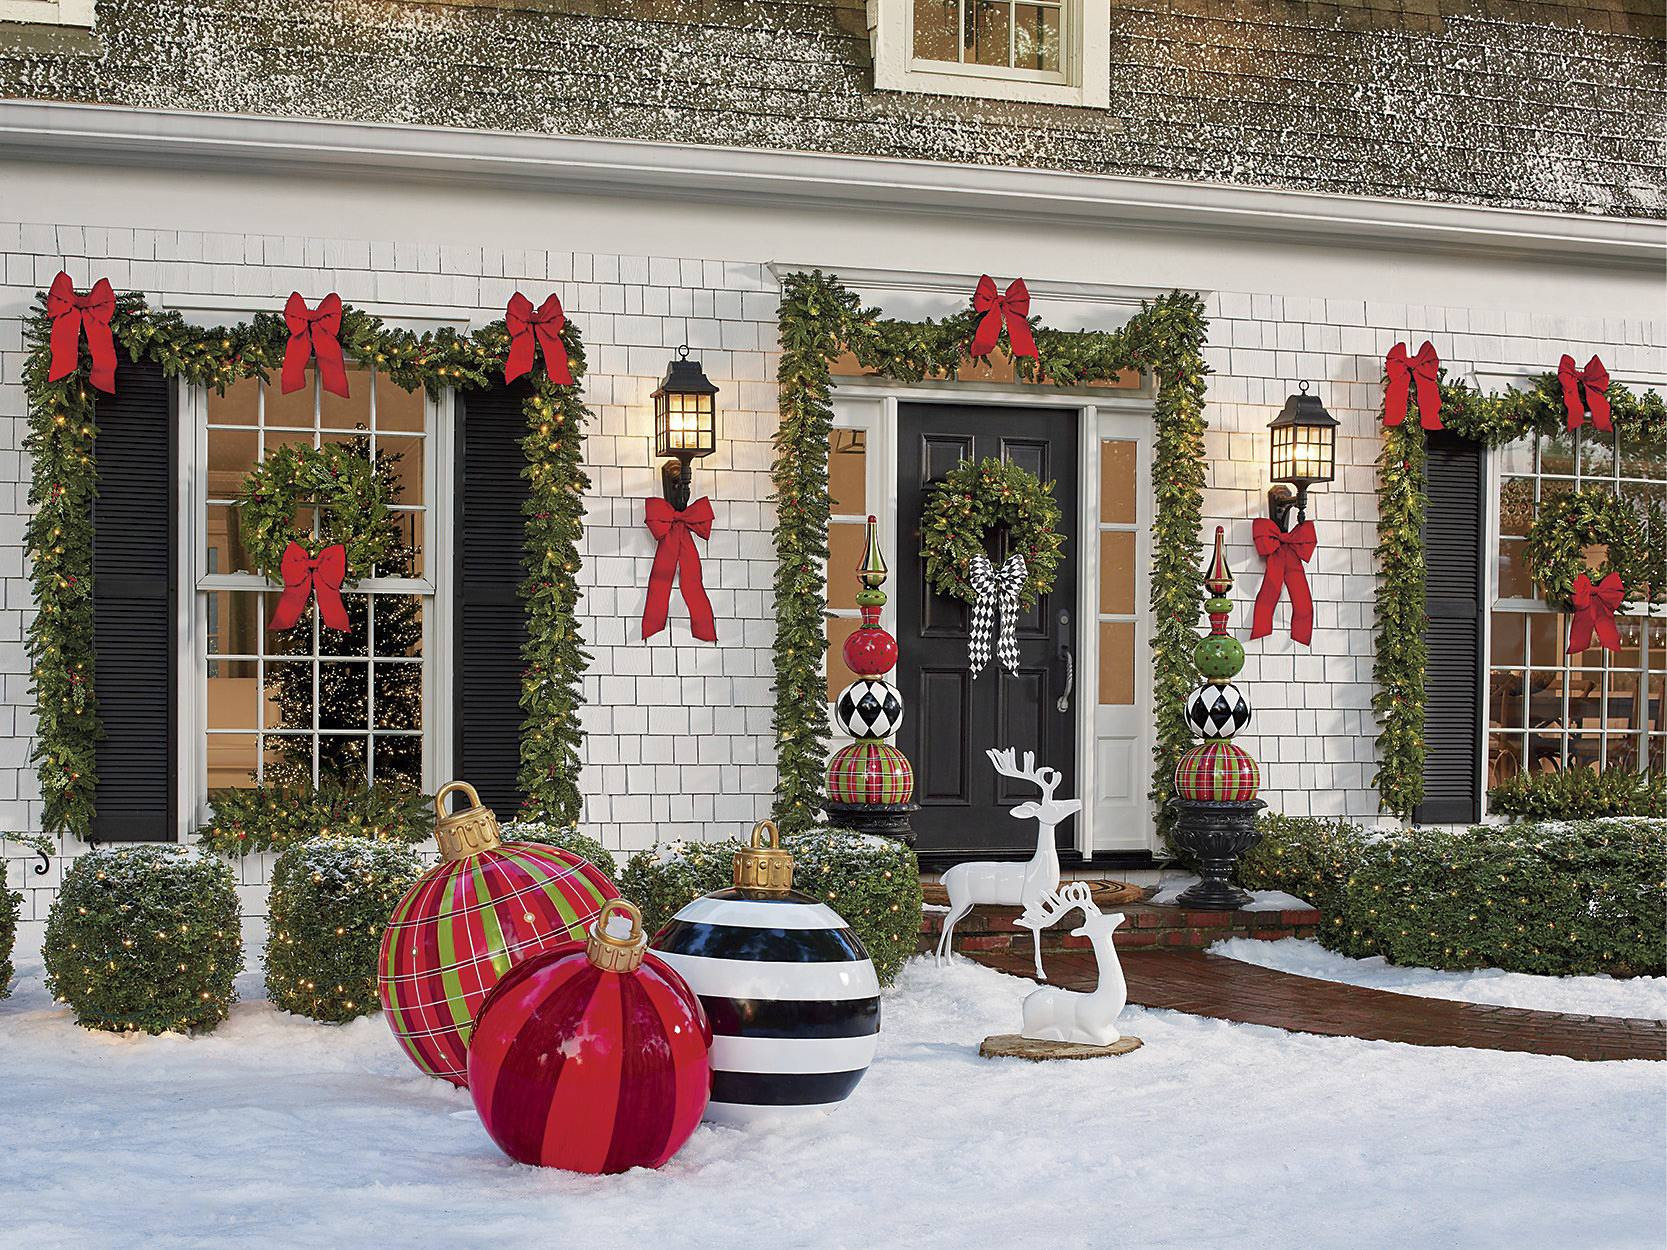 Decorating Porch For Christmas  Christmas Porch Decorations 15 Holly Jolly Looks